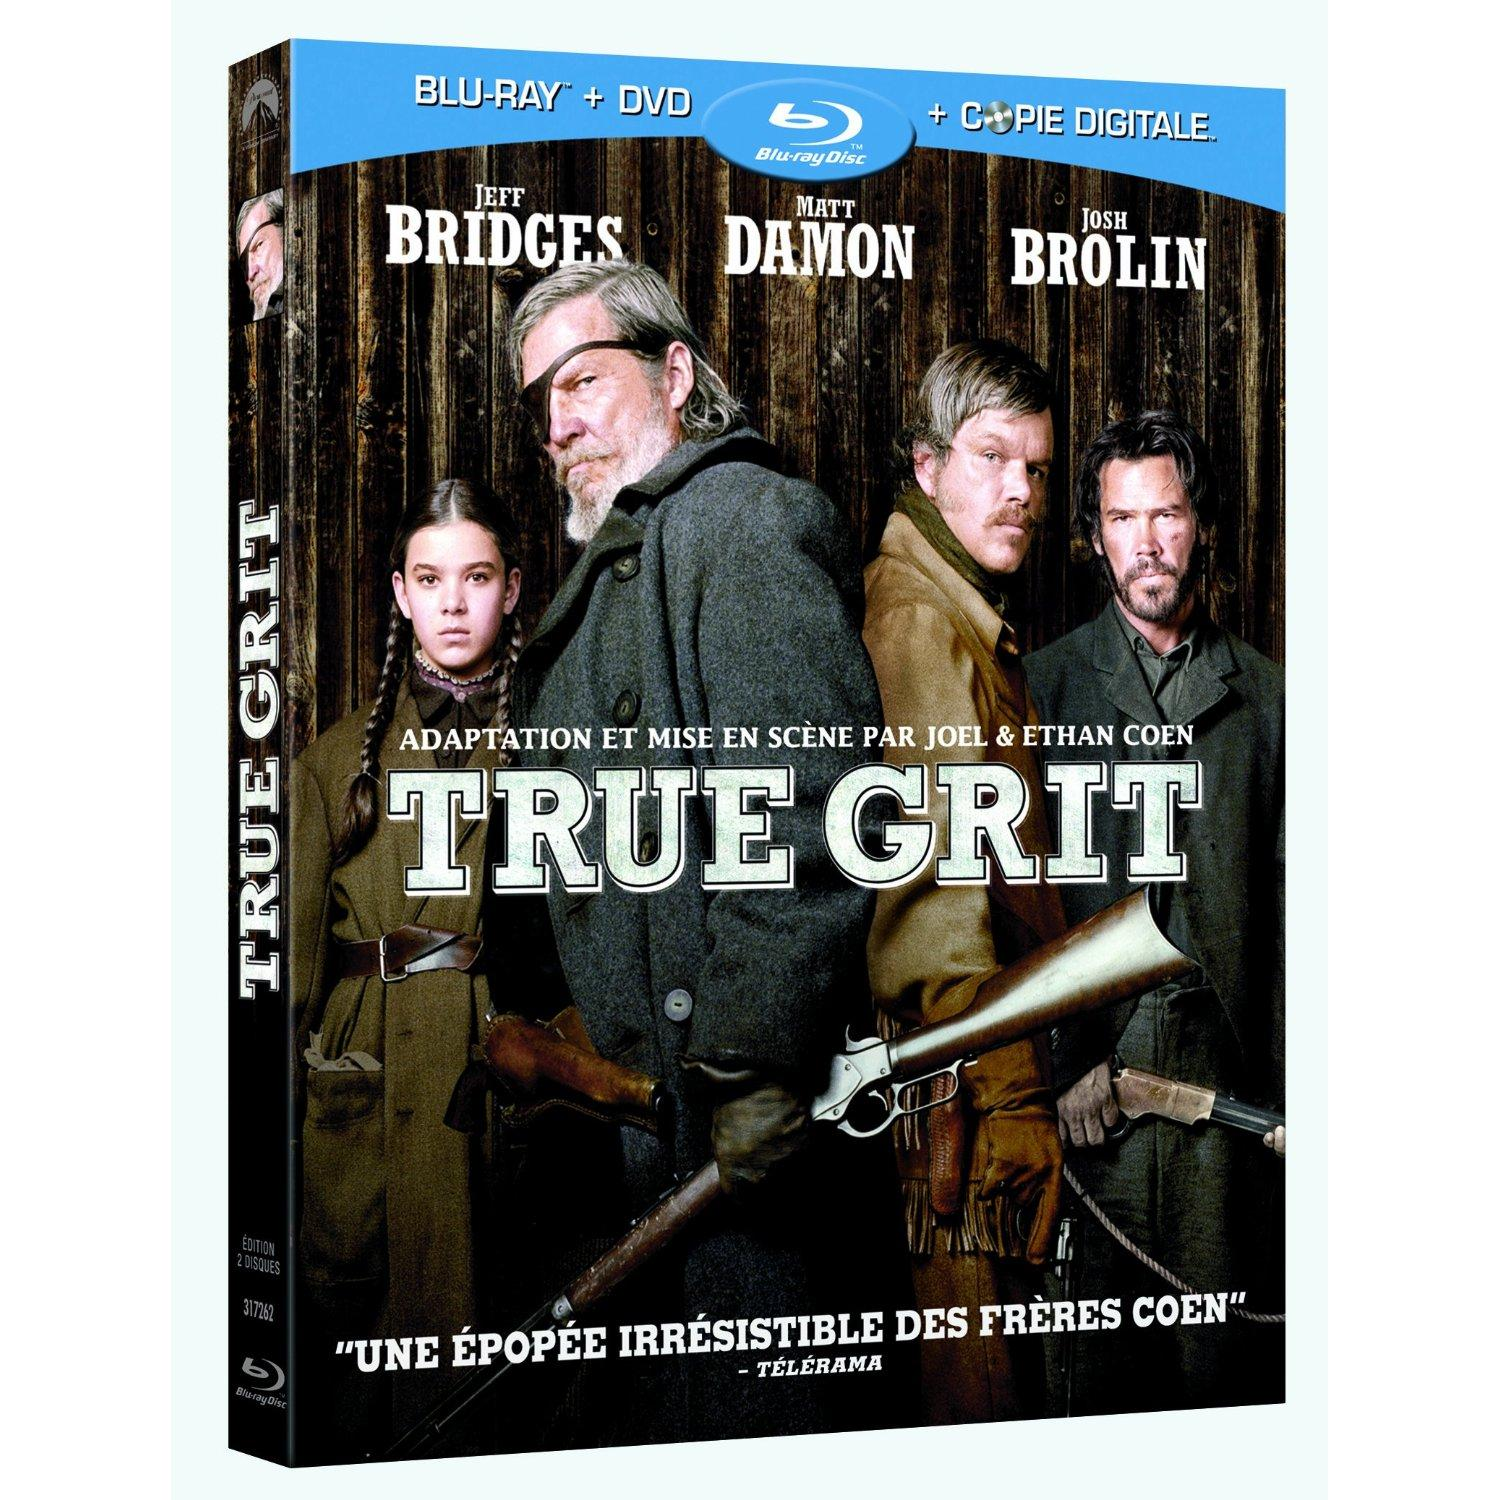 True Grit : un Blu-ray too great